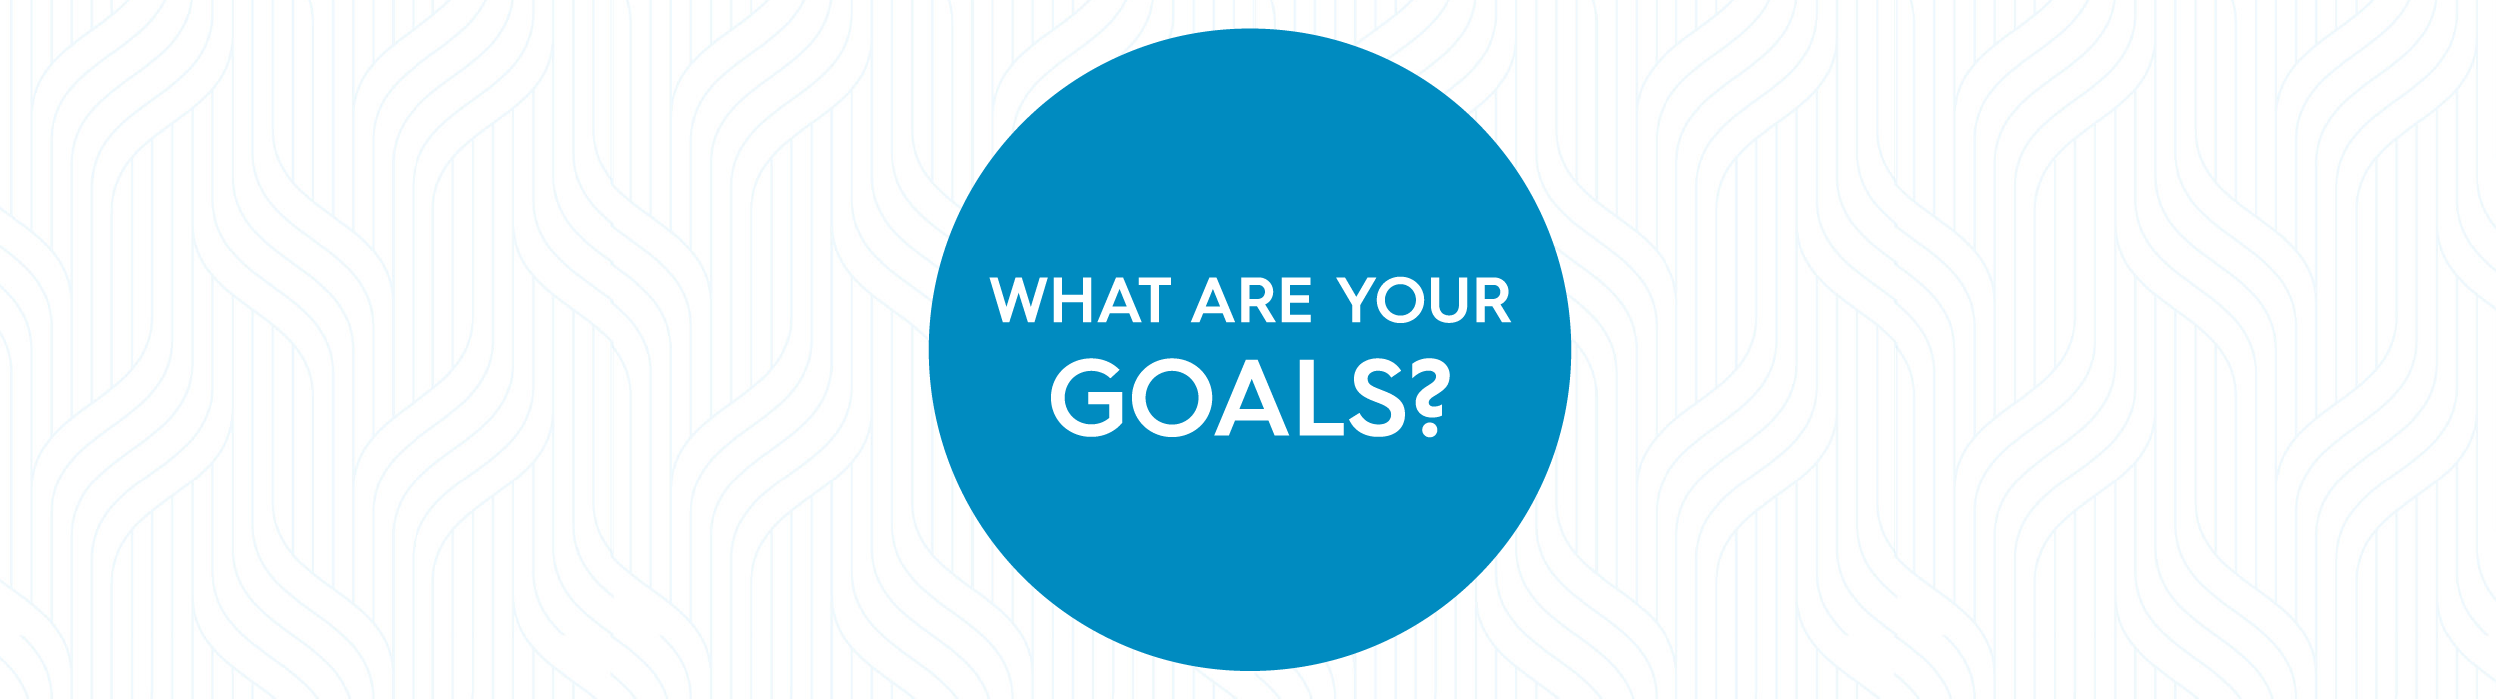 """Blue circle with white text inside saying """"What are your goals?"""""""